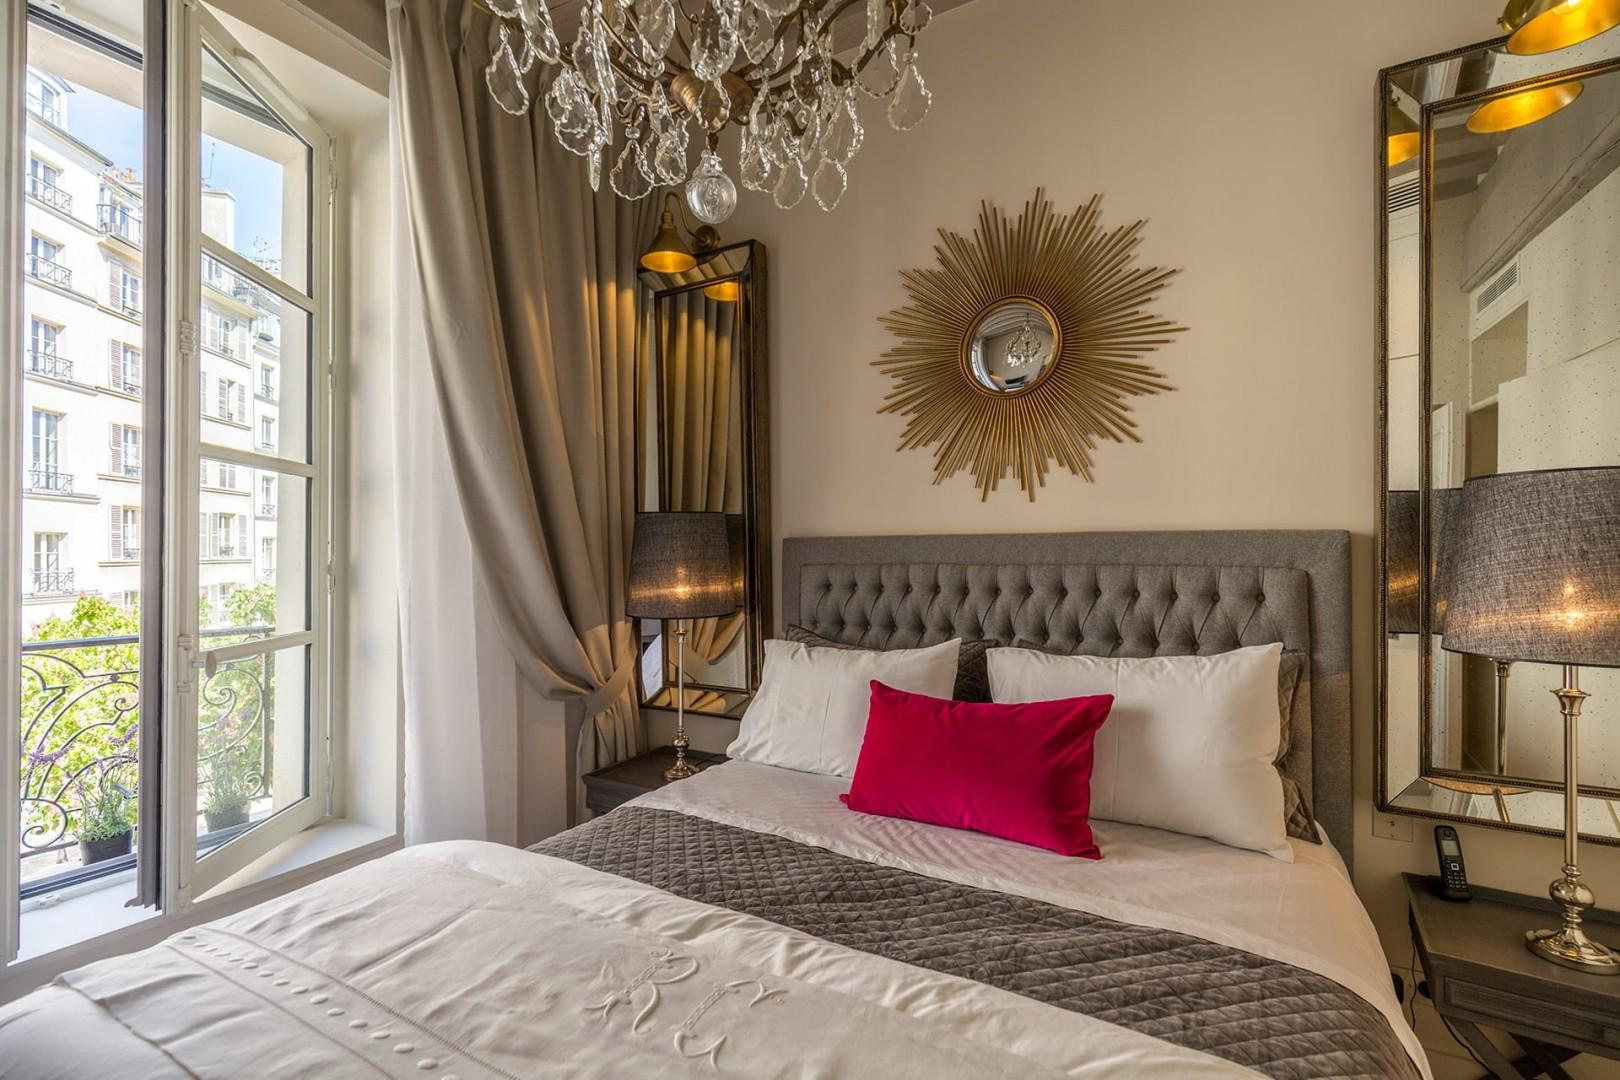 Feel at home in the beautiful bedroom with a sumptuous bed.